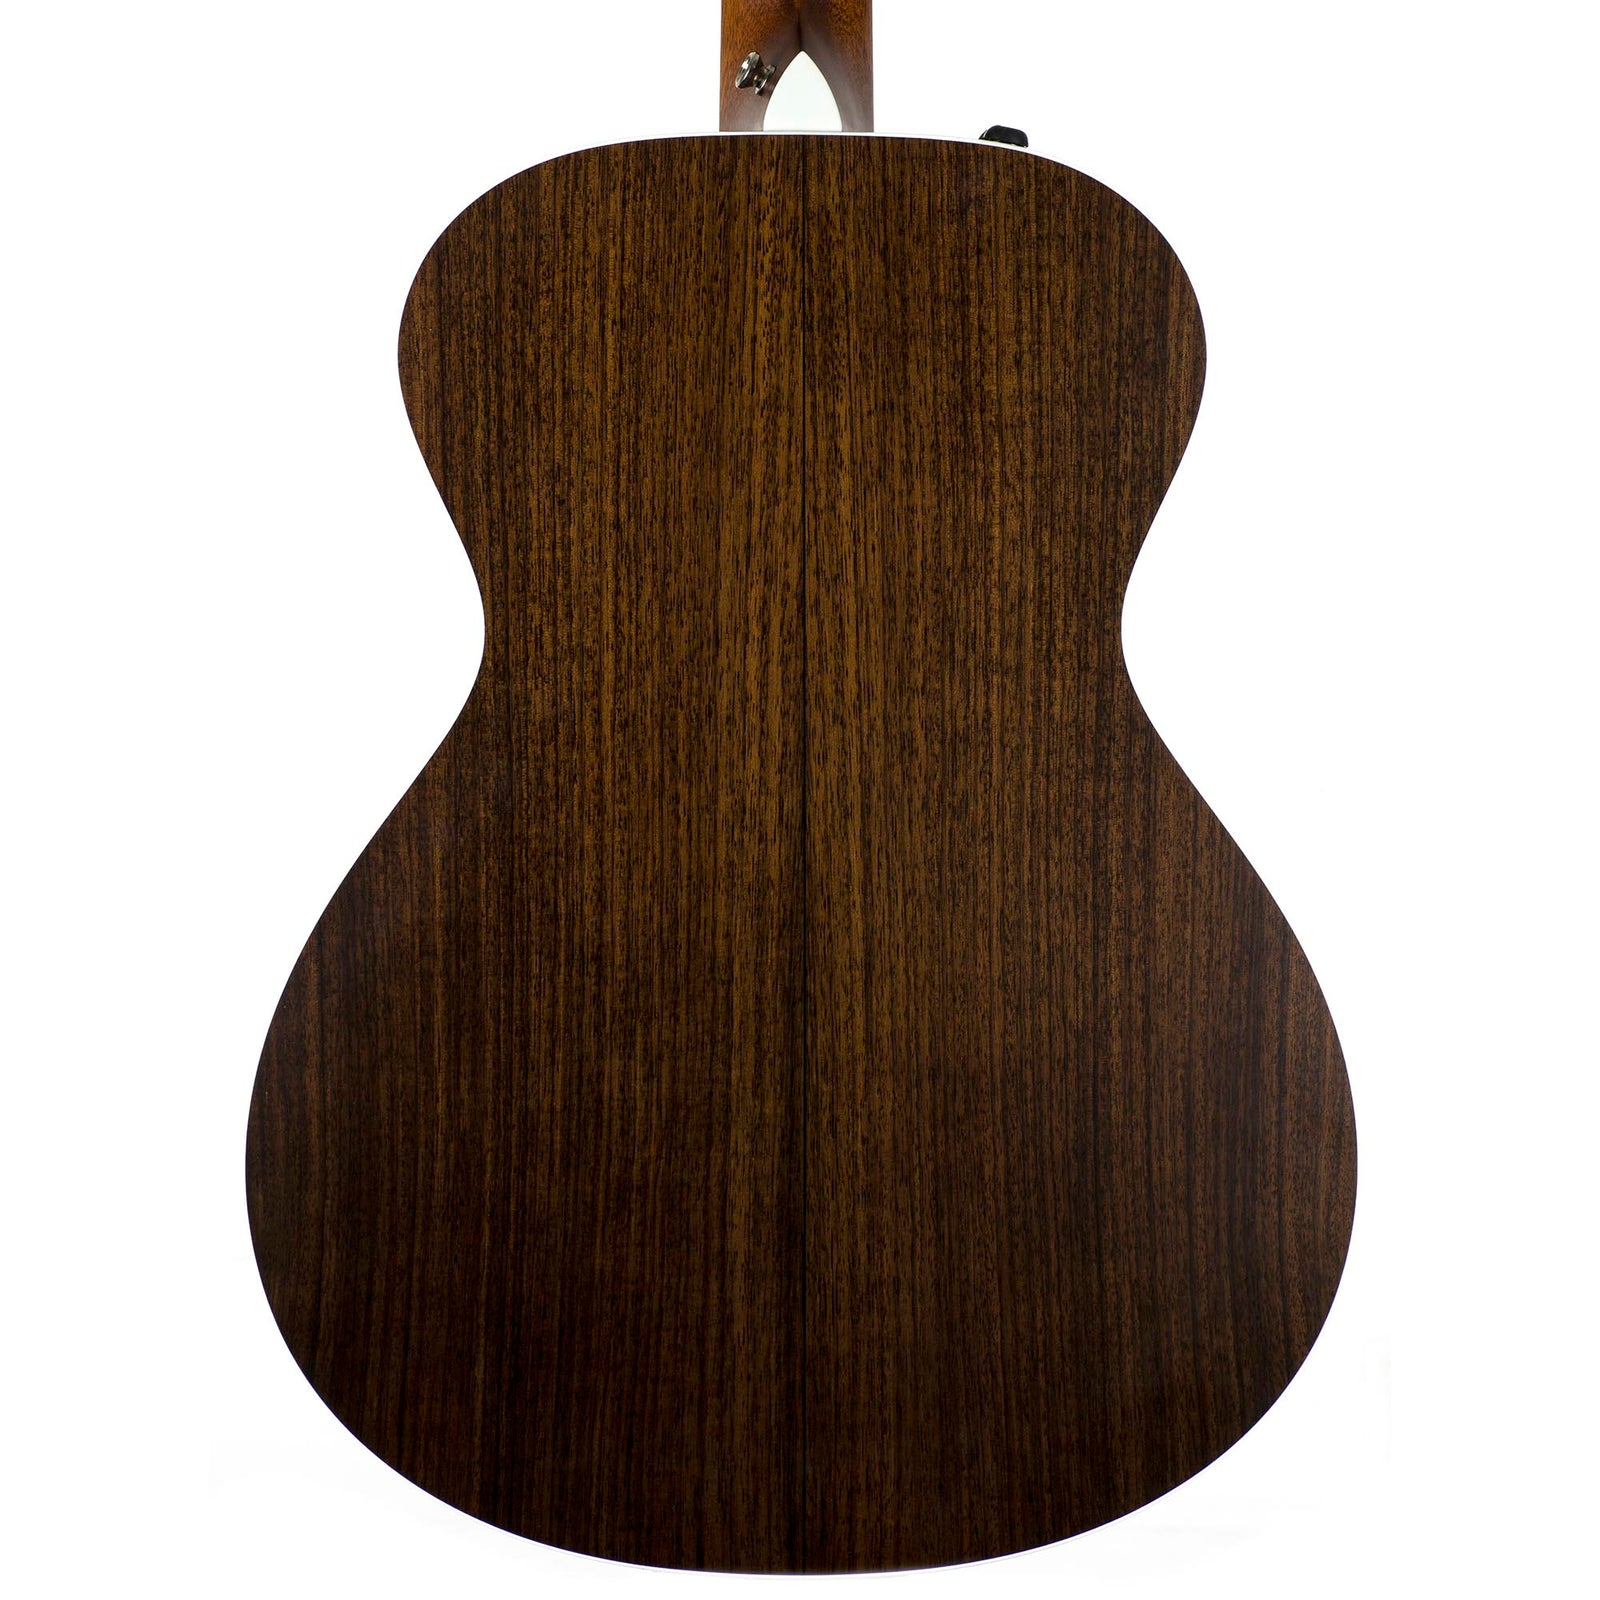 Taylor 412E Limited Indian Rosewood Back And Sides - Sitka Spruce Top - Used